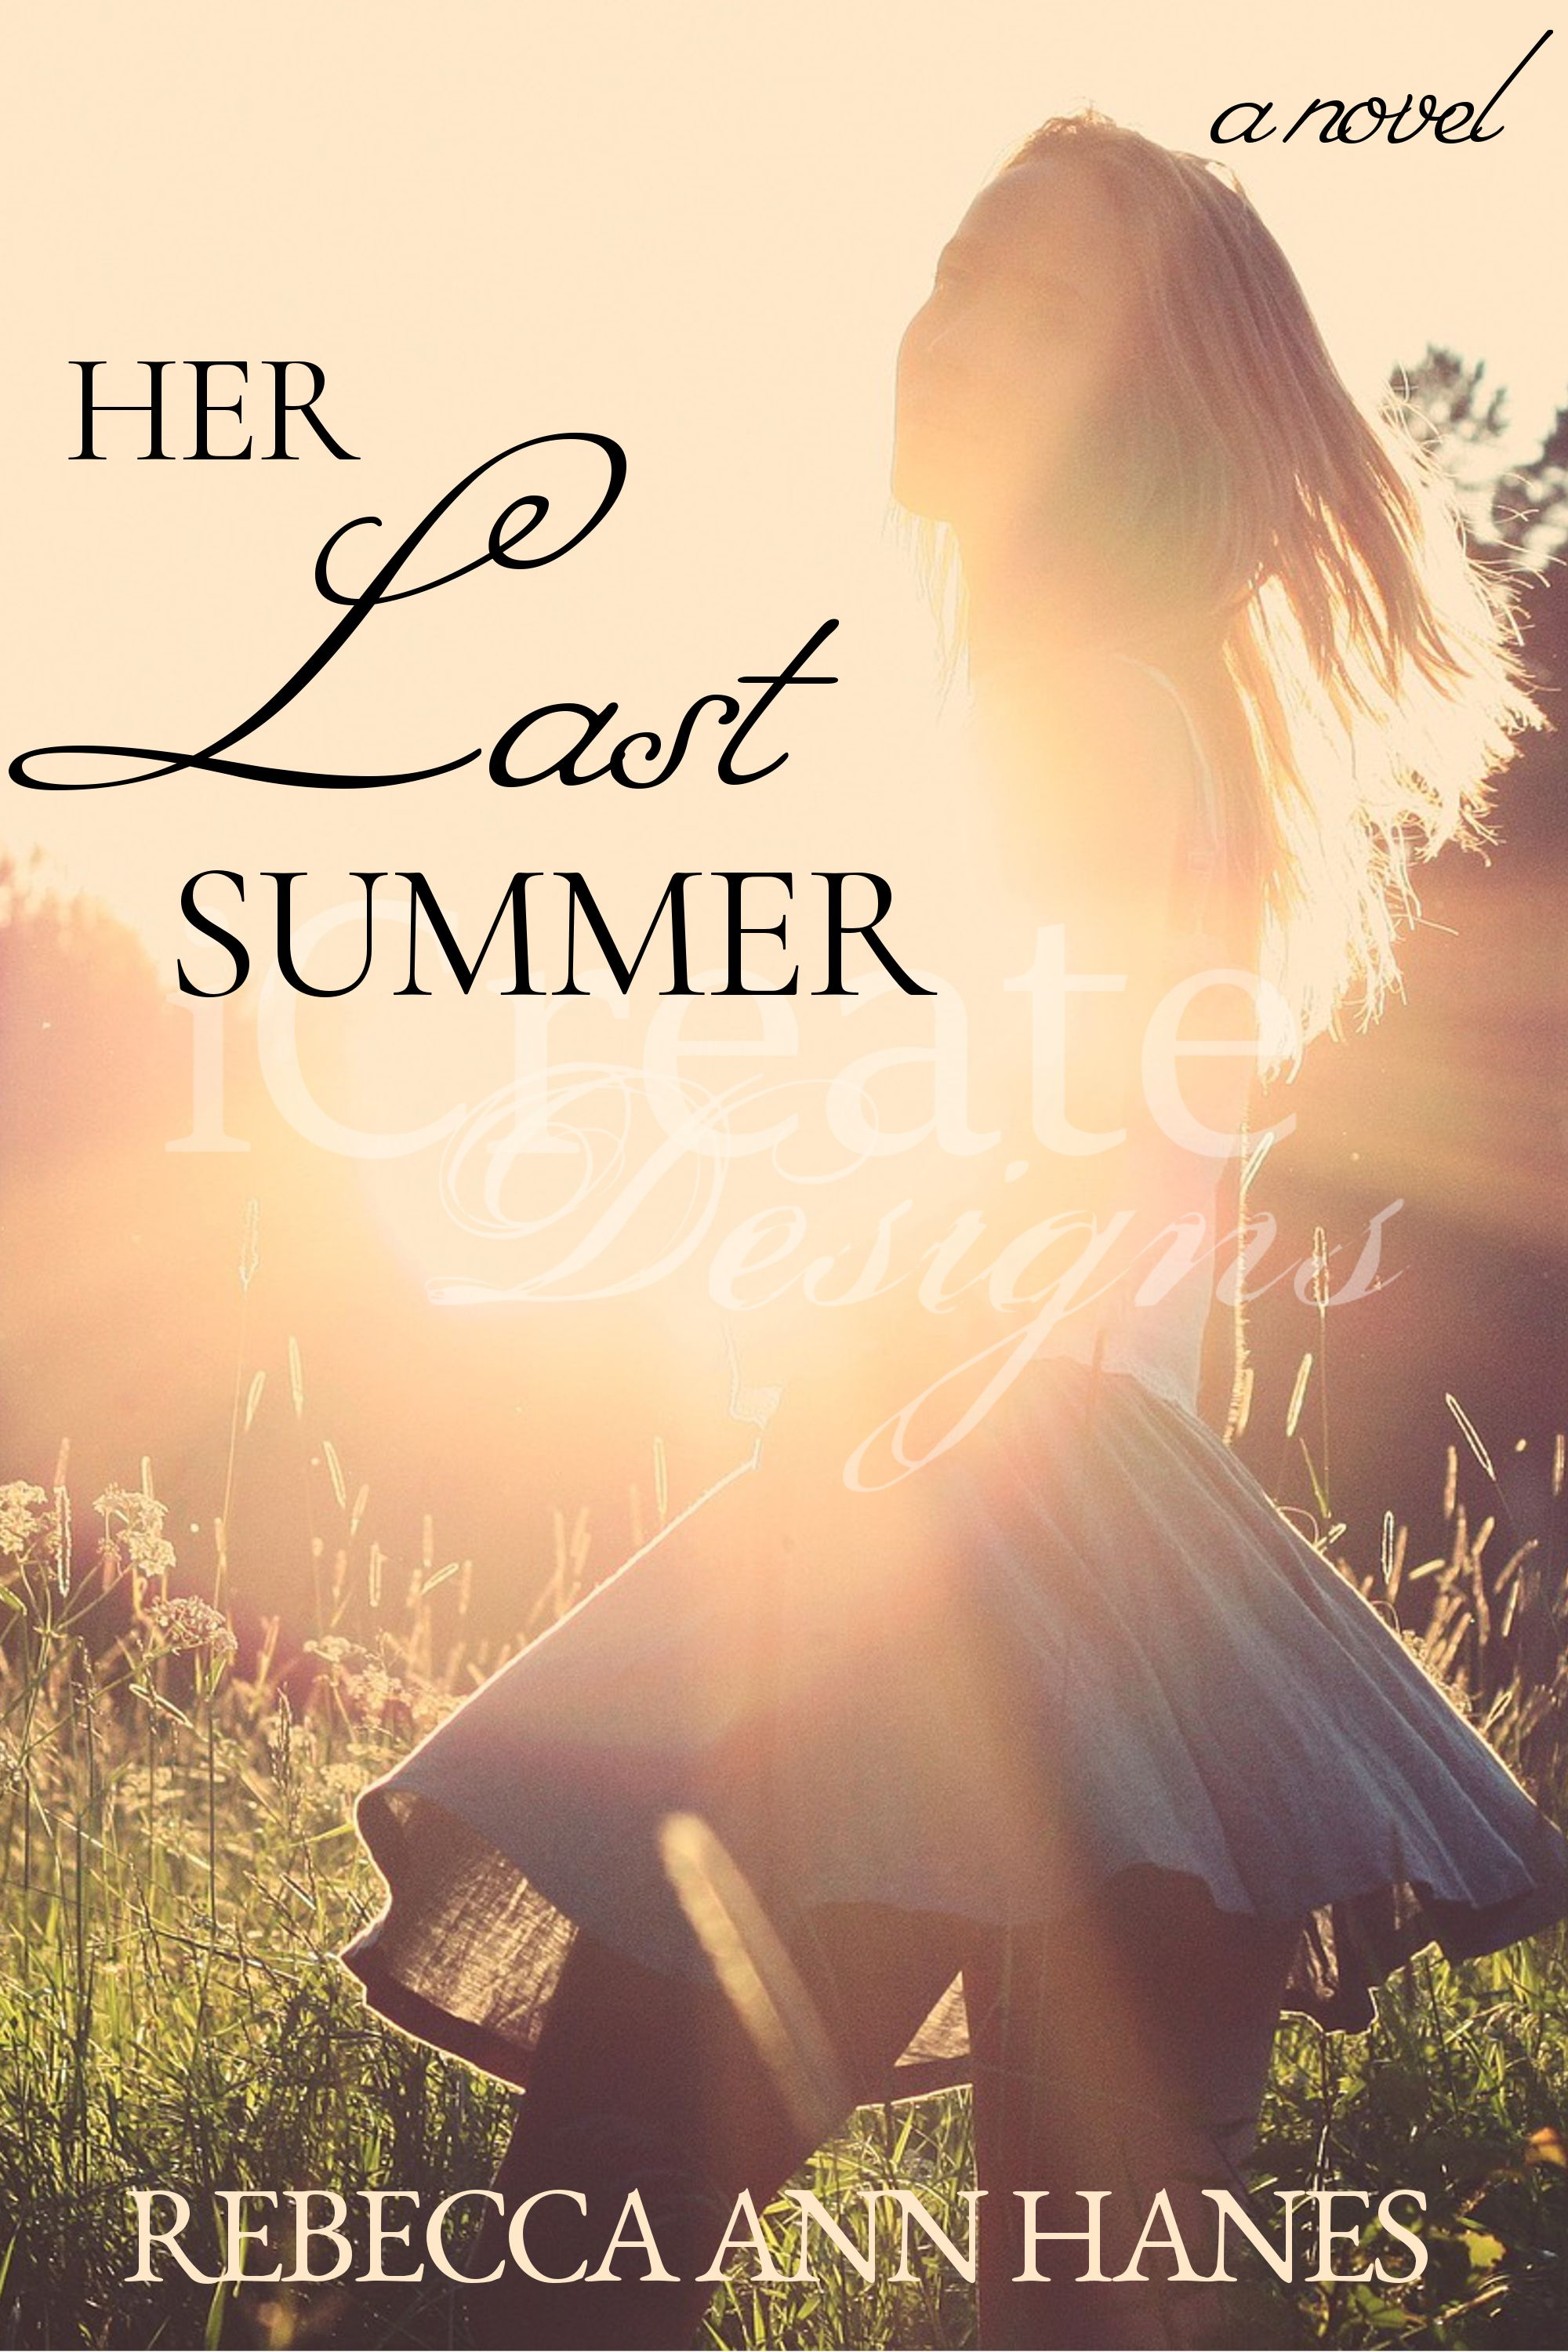 $50. #Premade #ebook #covers. #teen #youngadult #YA #contemporary #romance #story #love #friends #friendship #faith #inspirational #summer #fiction #book #Christian #clean #indie #author #writing